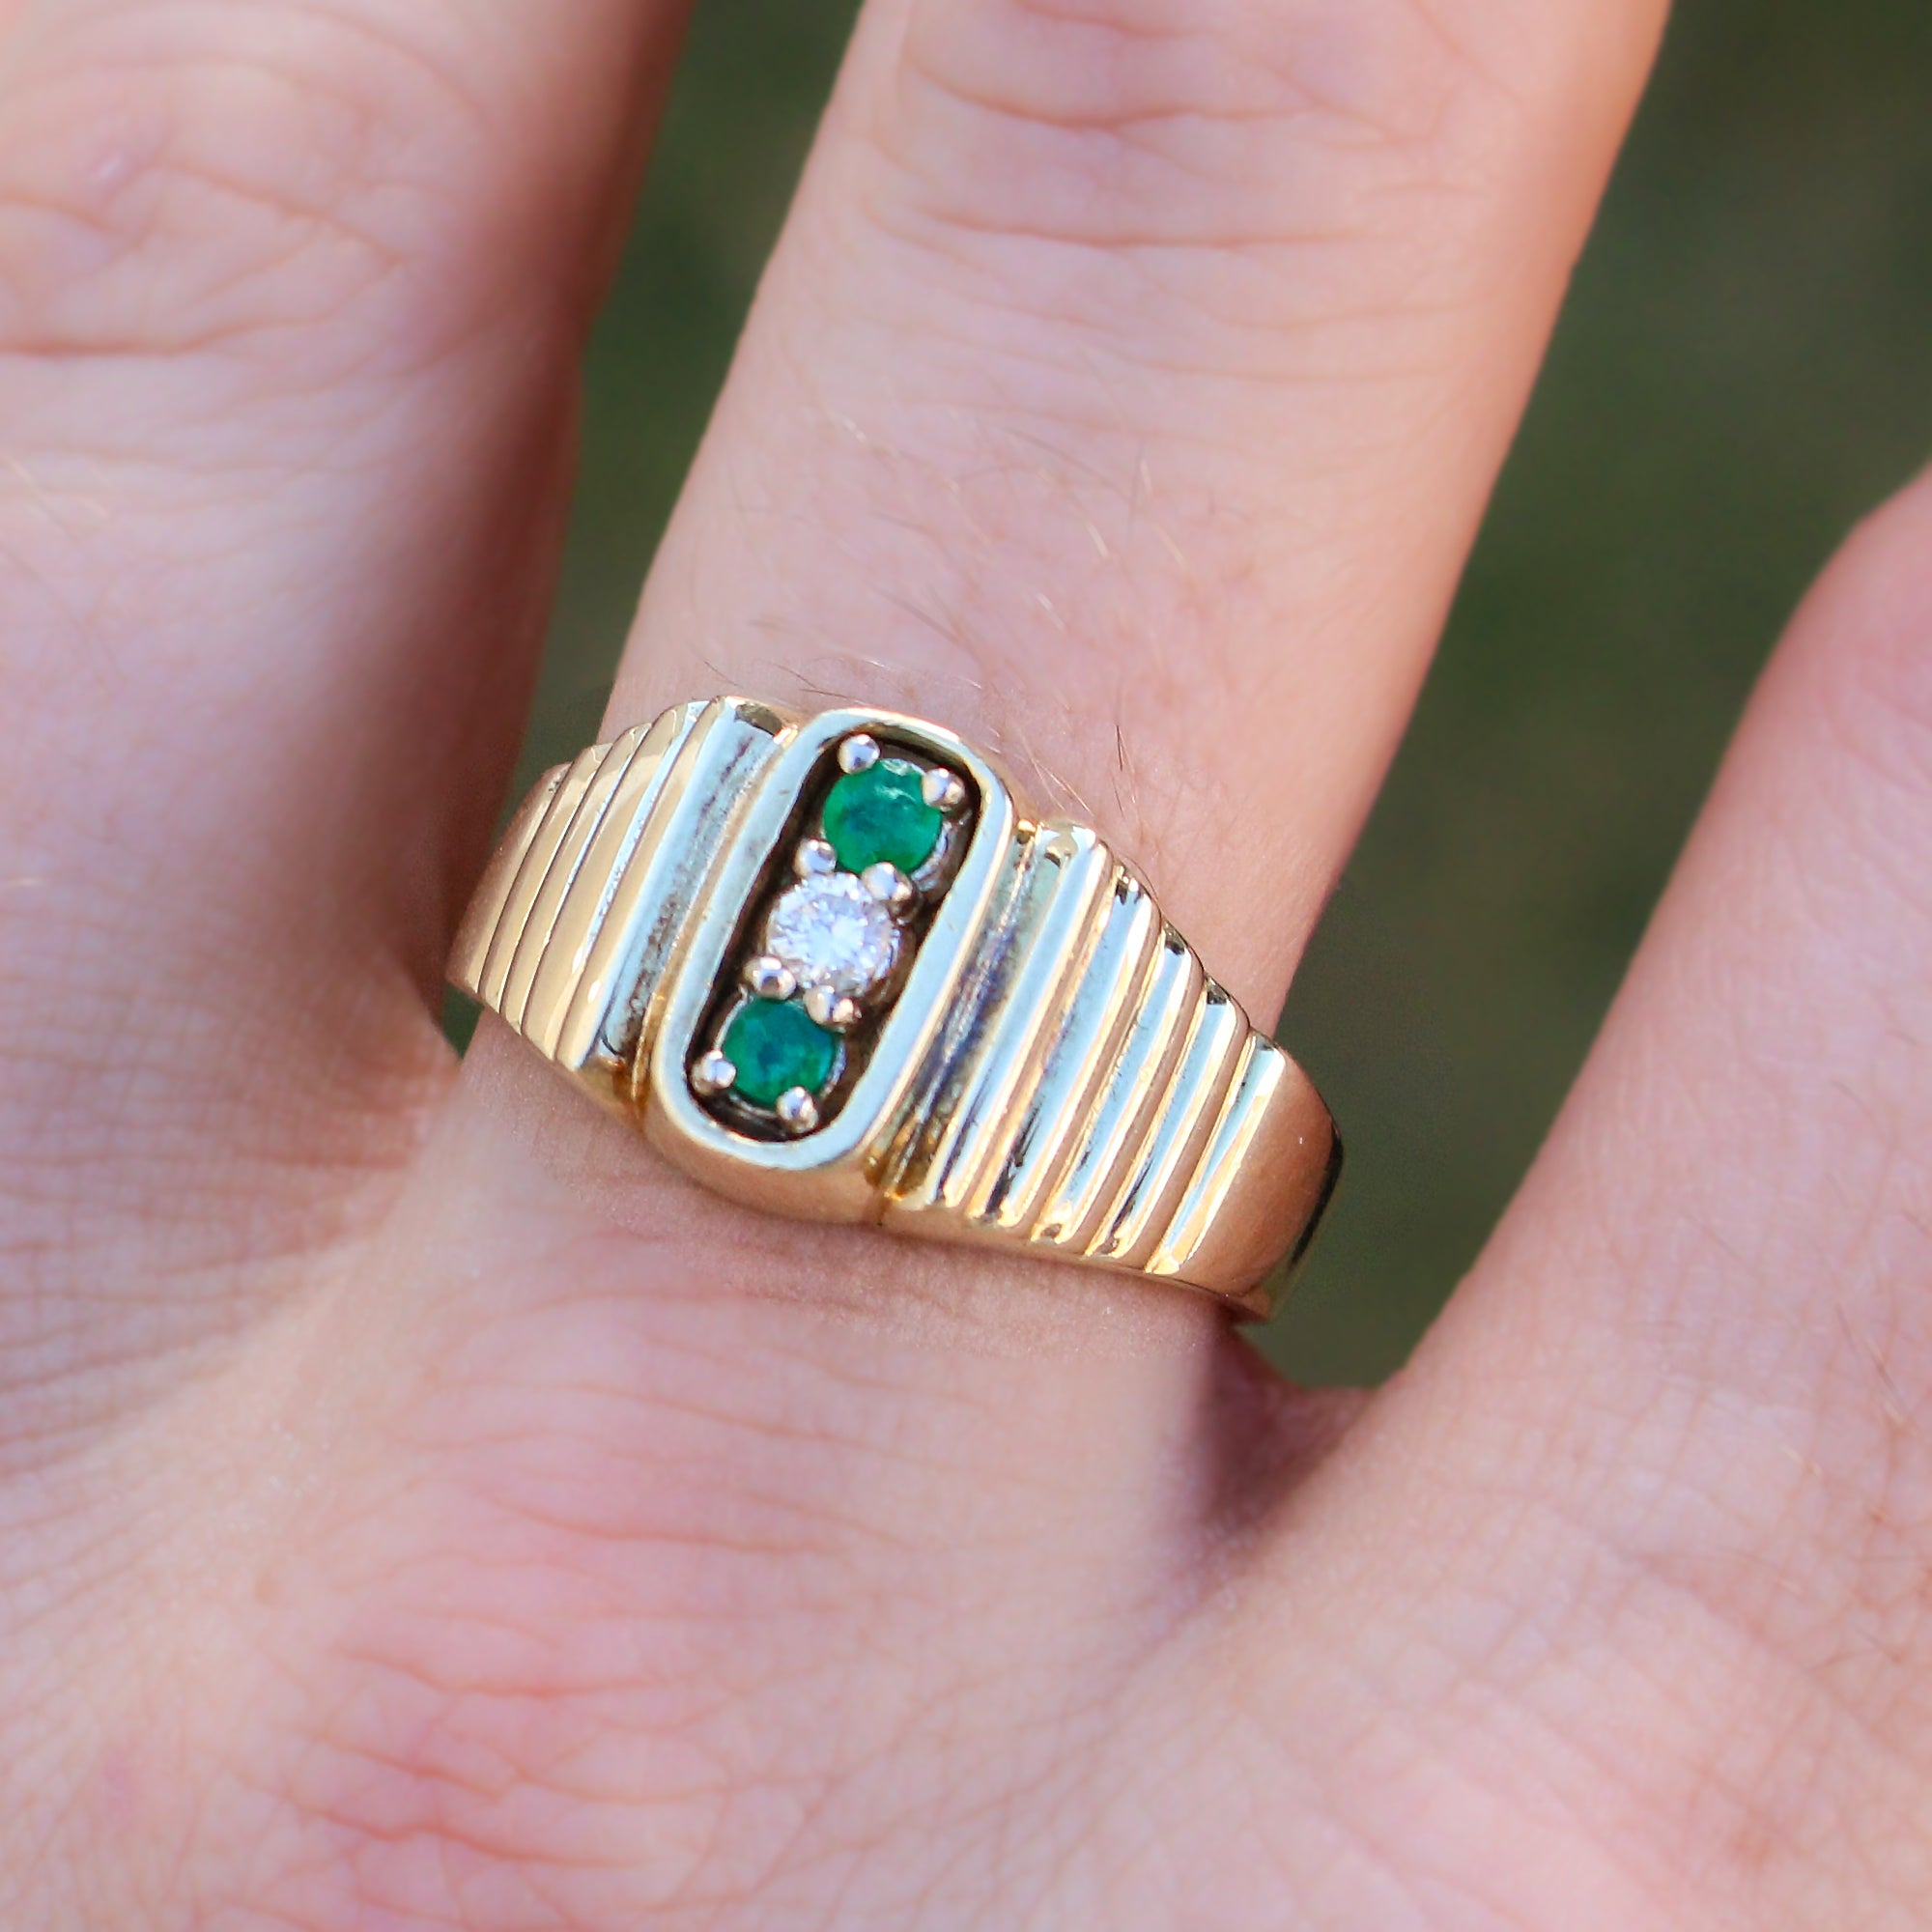 1970 Van Cleef and Arpels Emerald Diamond Gold Ring For Sale at 1stdibs